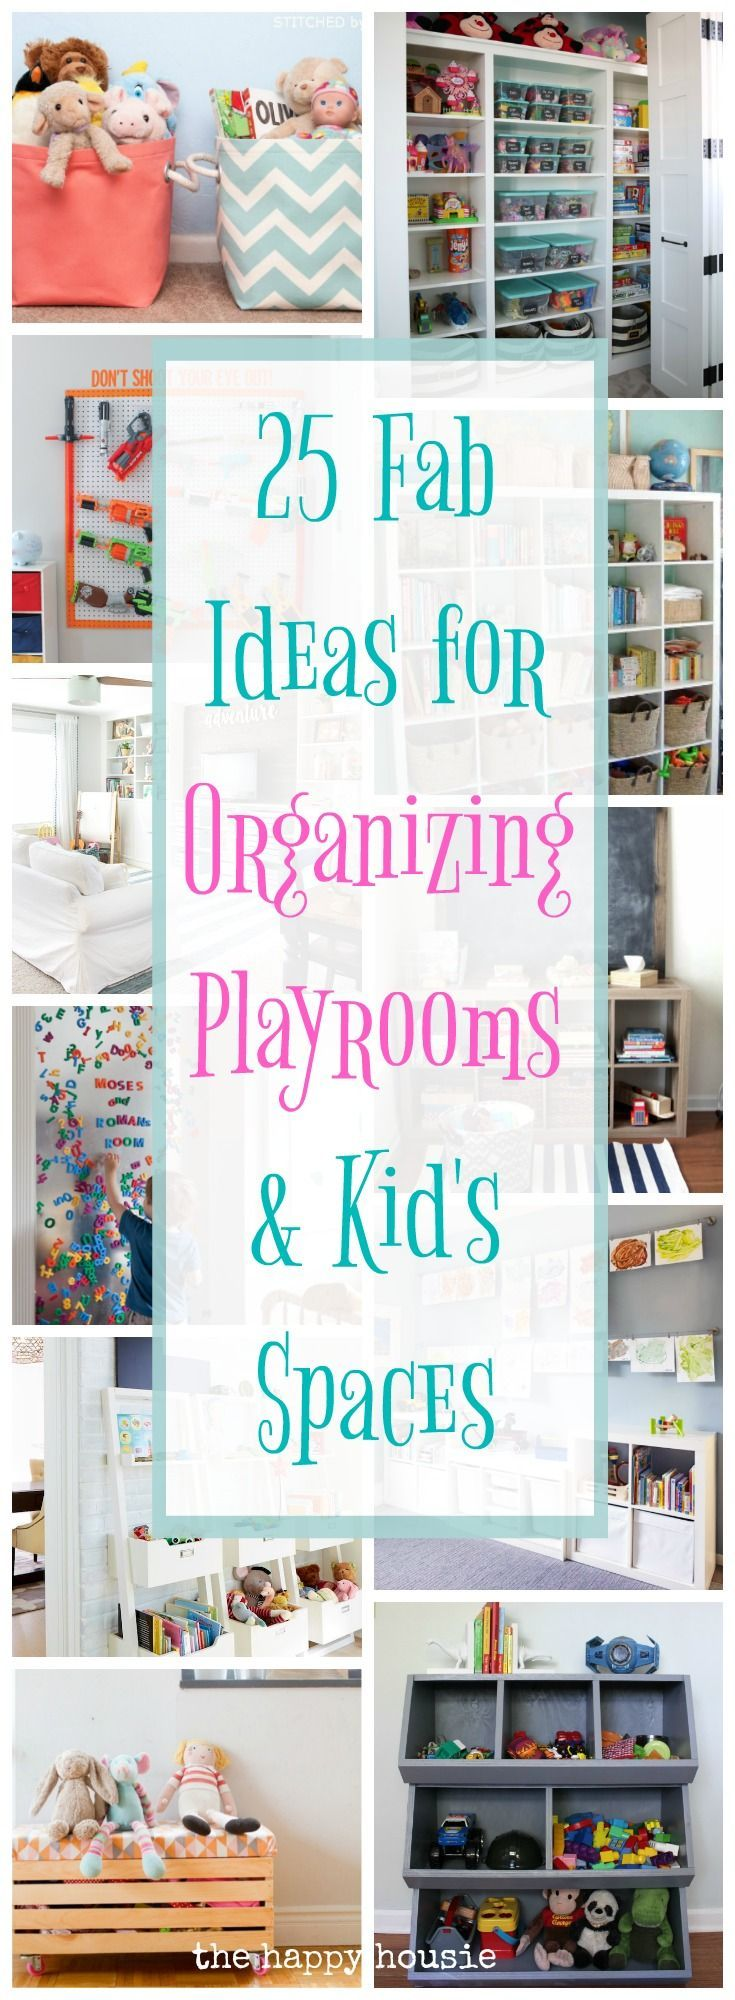 25 Fab Ideas for Organizing Playrooms & Kid's Spaces. Great ideas to get all the kids stuff organized.